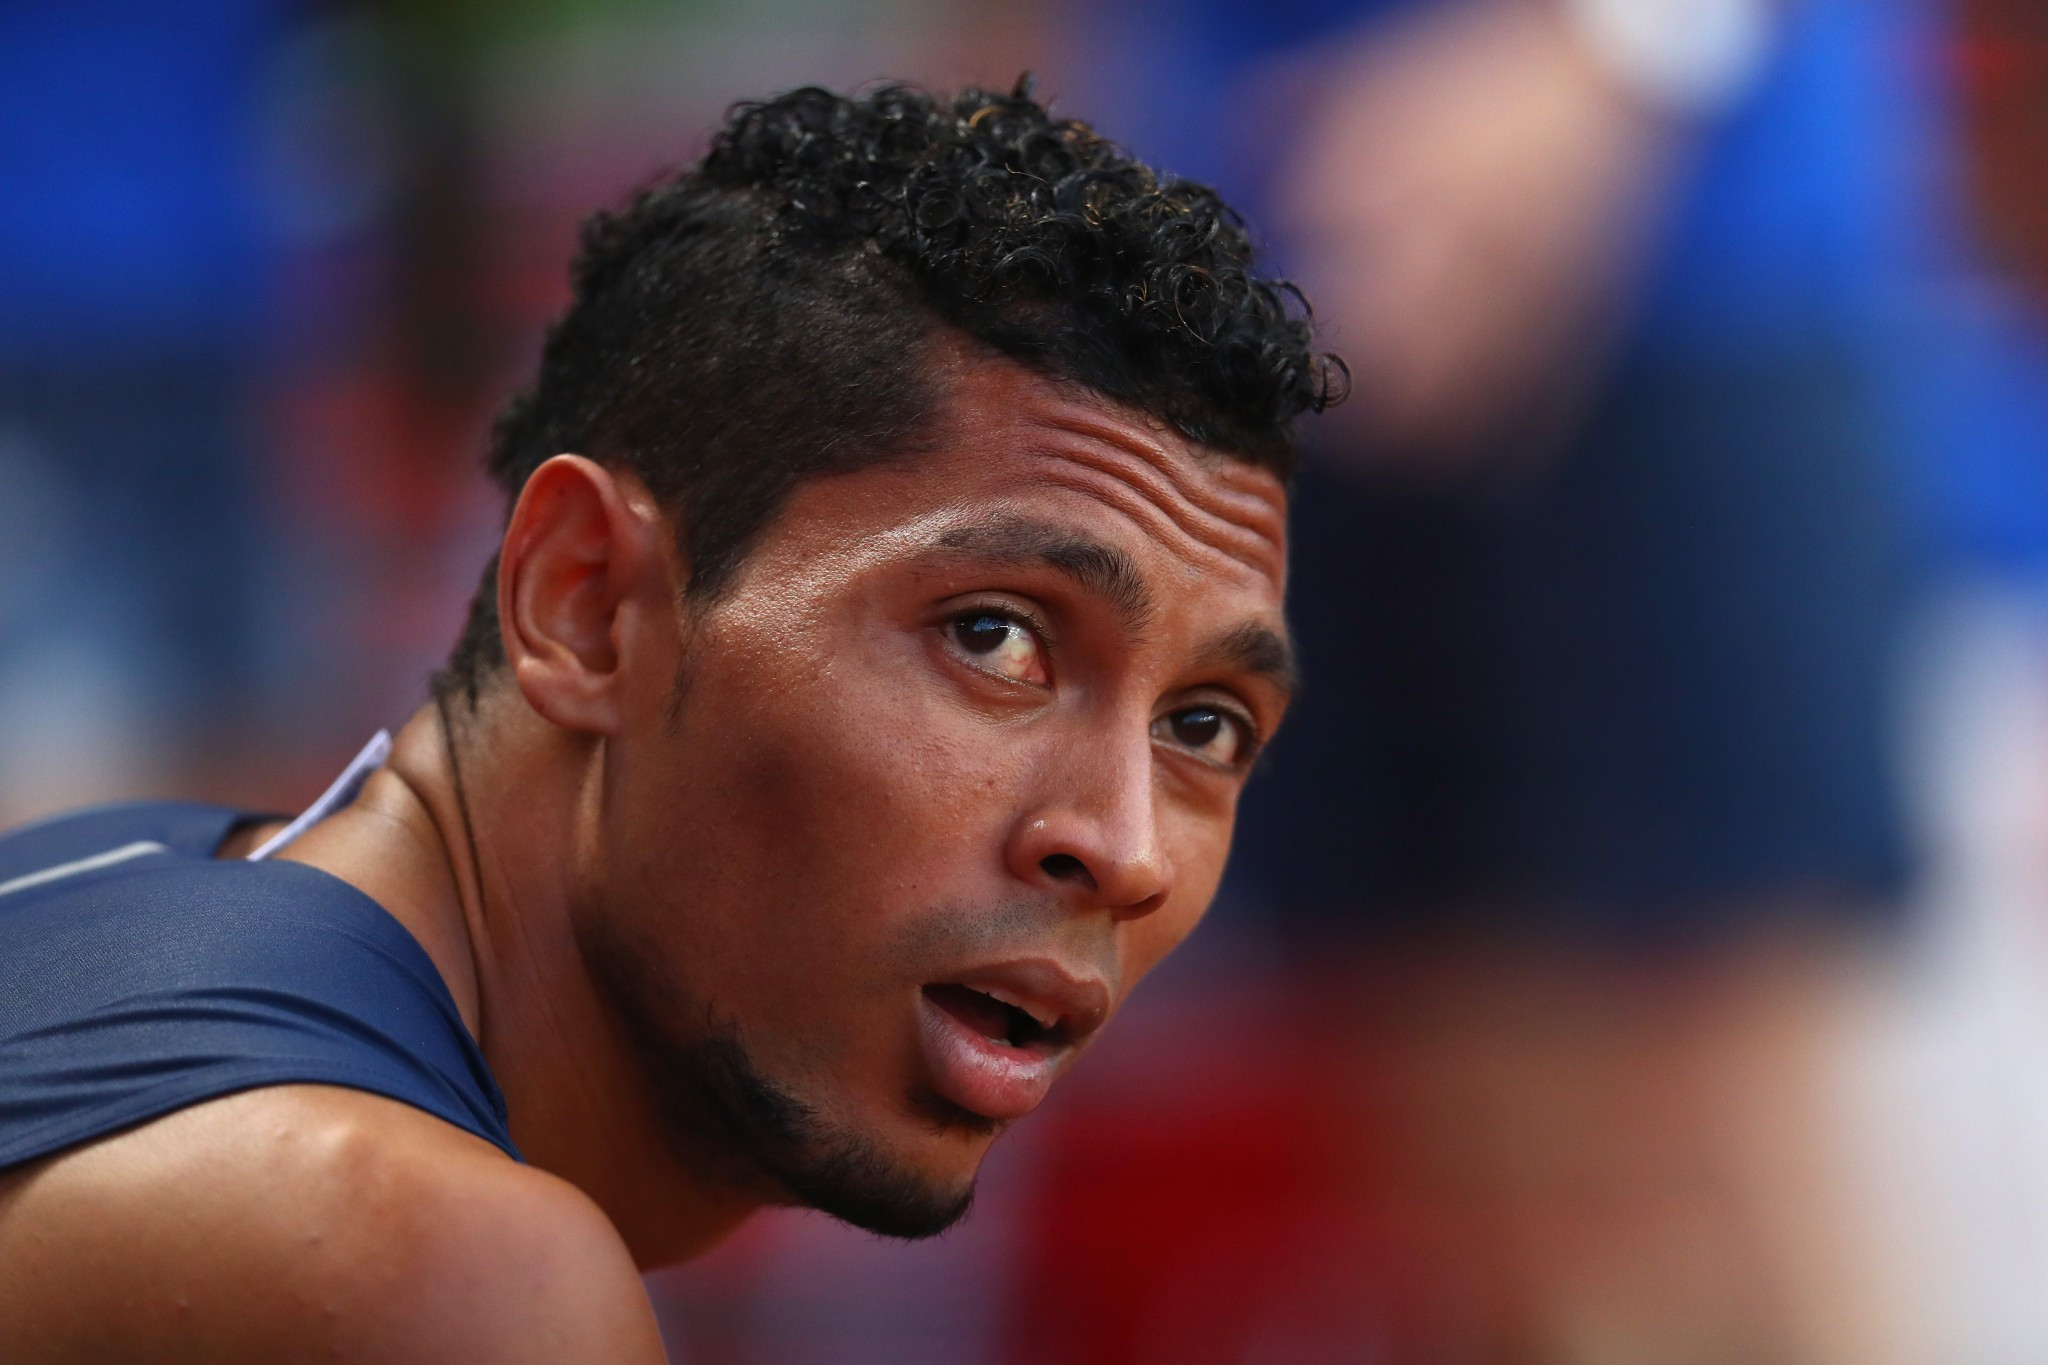 Van Niekerk claims he is up to job of filling post-Bolt void in track and field